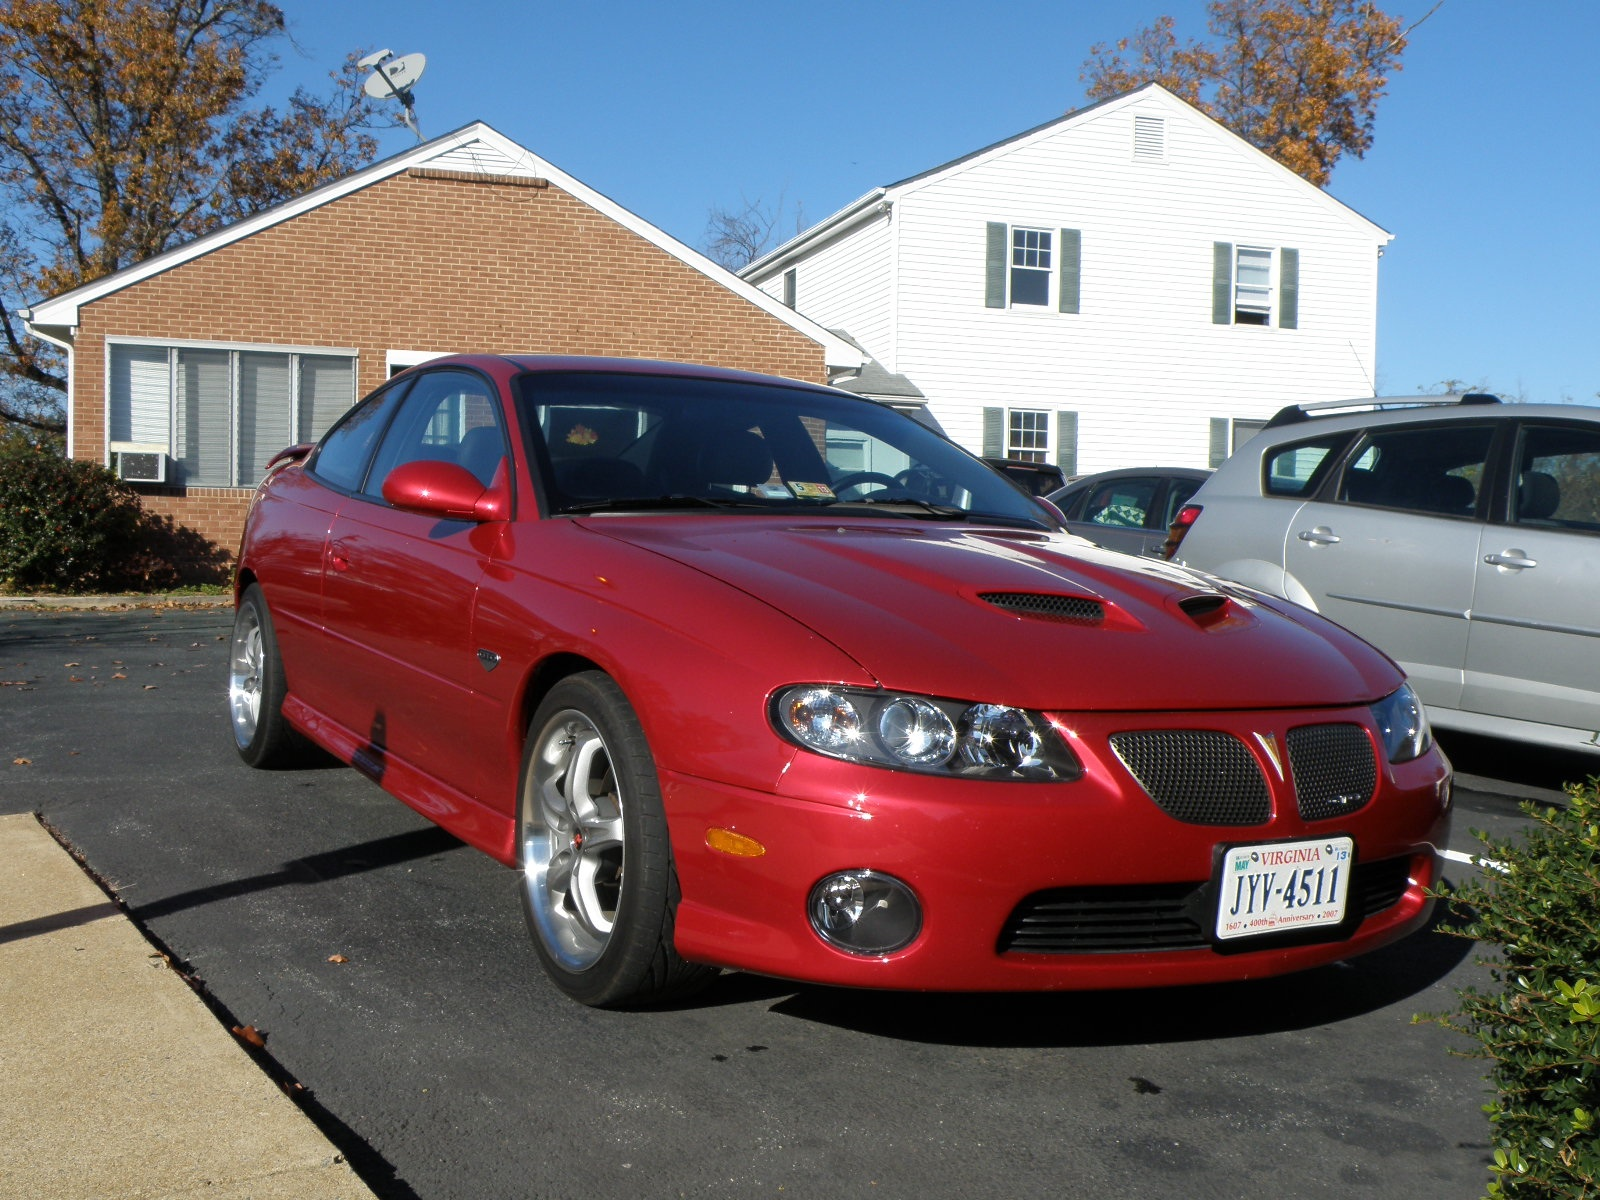 2006 M6 Spice Red GTO for sale - ,200-gto-office-front.jpg